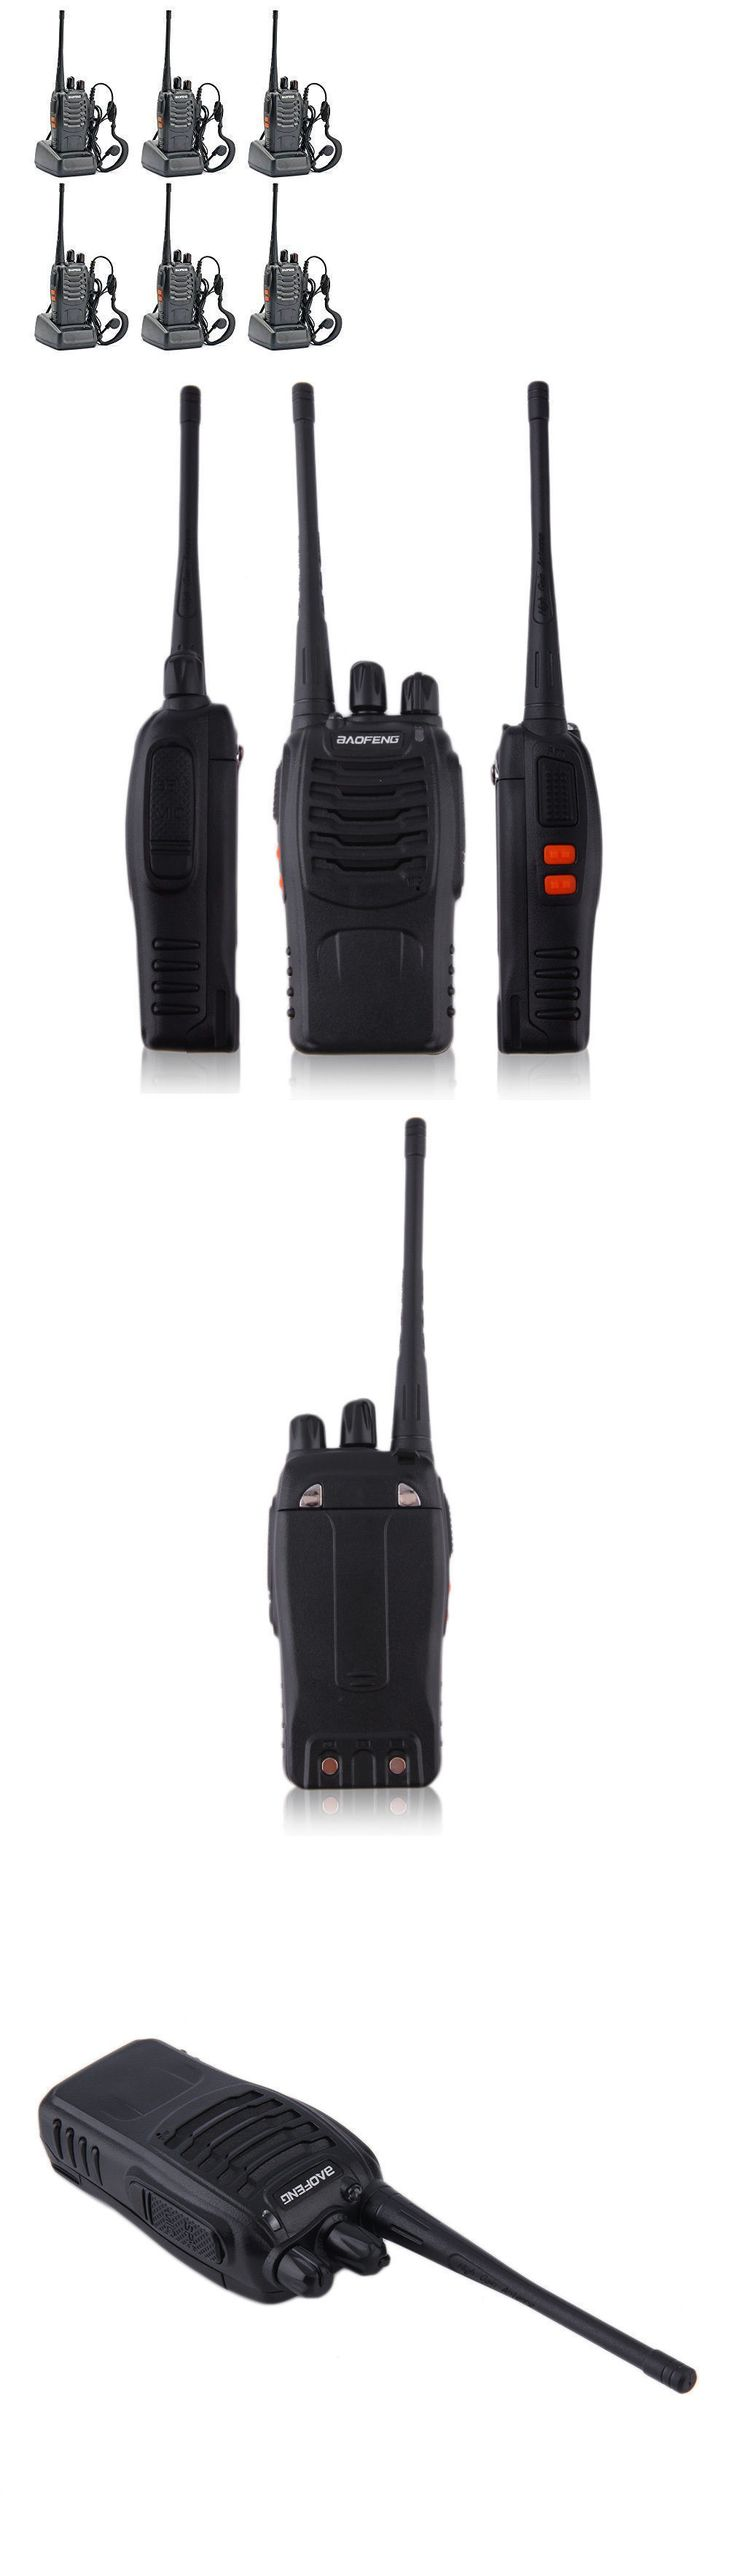 Walkie Talkies Two-Way Radios: Two 2 Way Radio (Pack Of 6) Walkie Talkie Business Commercial Rechargeable New 8 BUY IT NOW ONLY: $61.95